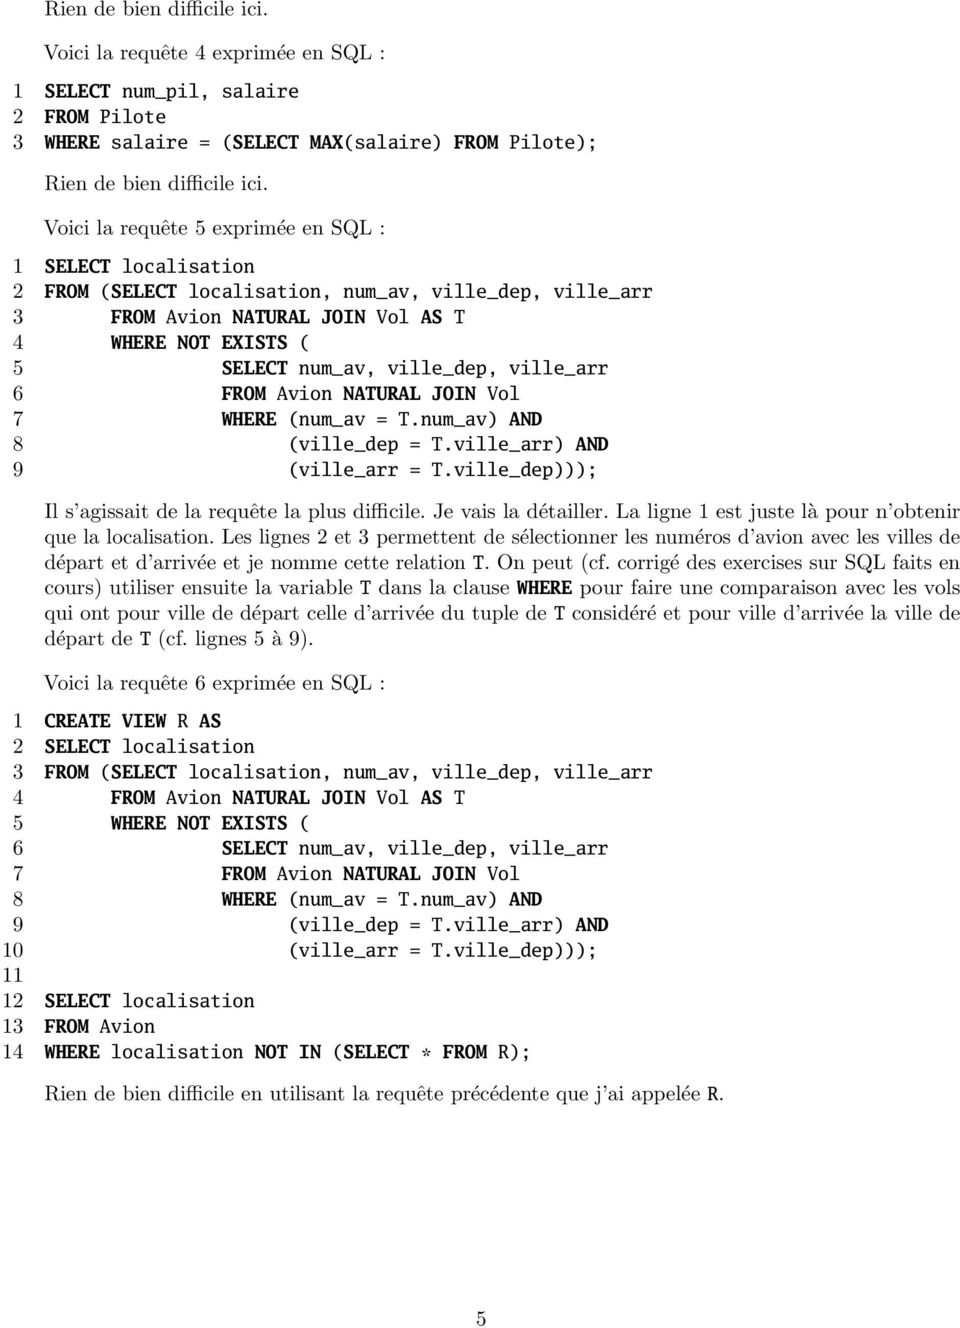 ville_dep, ville_arr 6 FROM Avion NATURAL JOIN Vol 7 WHERE (num_av = T.num_av) AND 8 (ville_dep = T.ville_arr) AND 9 (ville_arr = T.ville_dep))); Il s agissait de la requête la plus difficile.